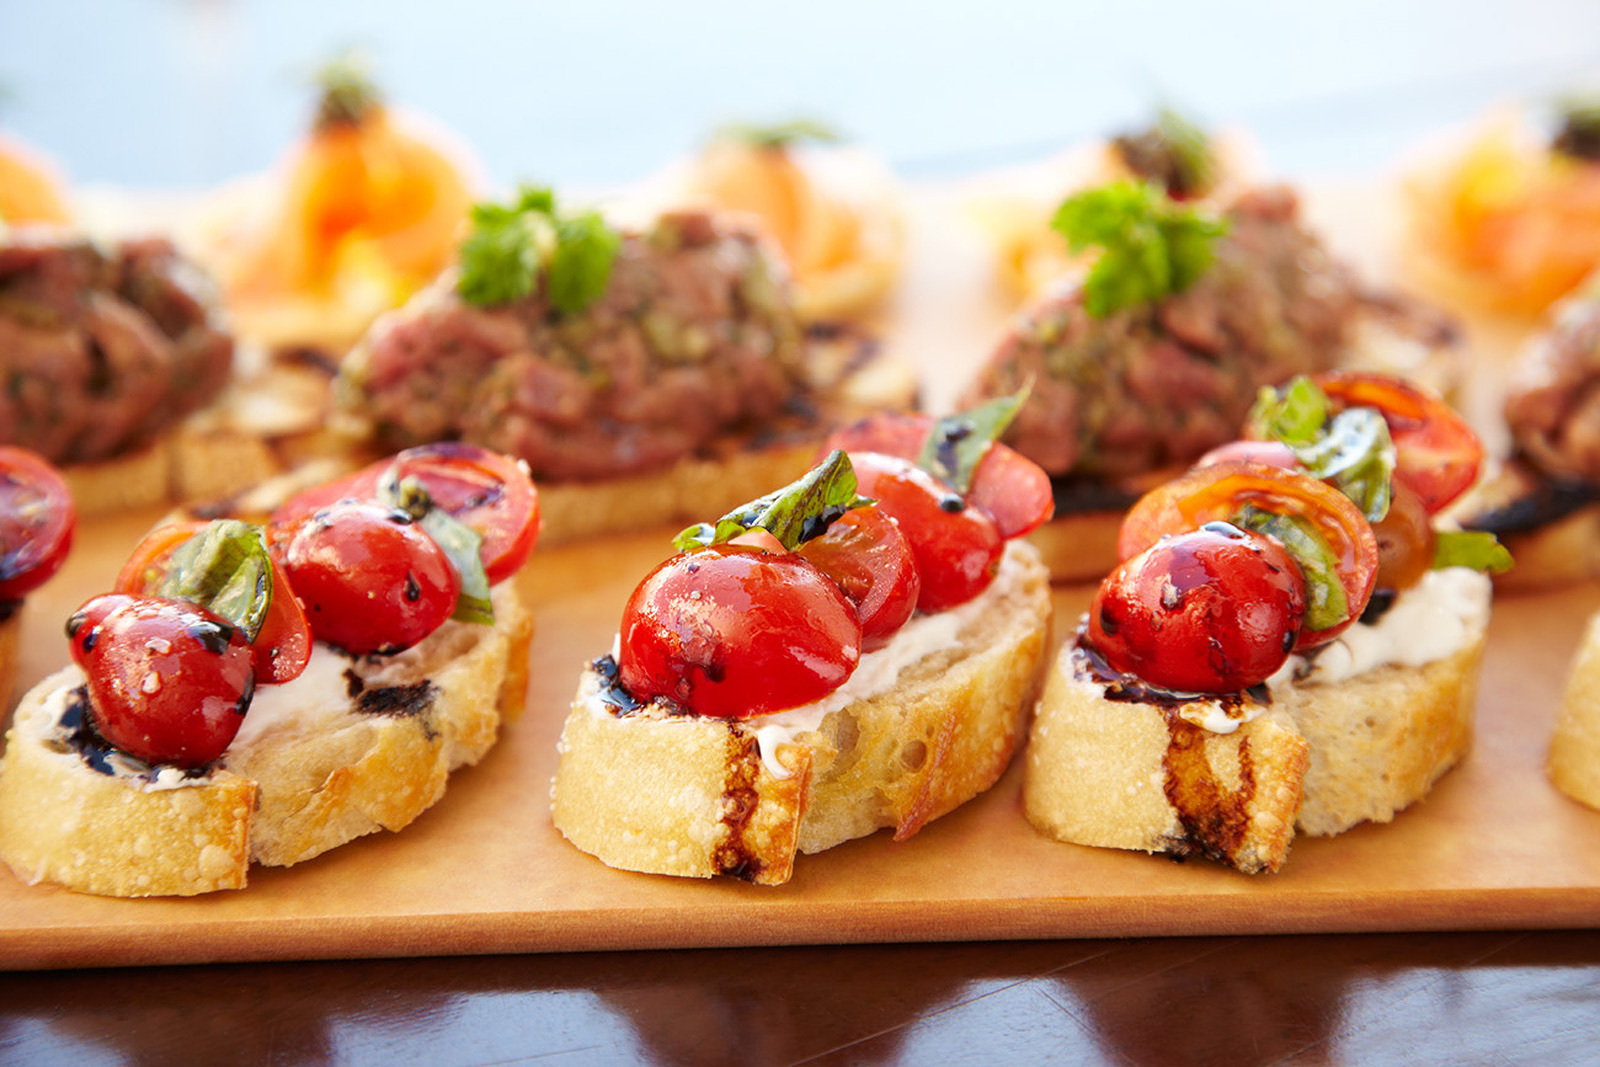 Bruschetta at Rancho Valencia  | Trinette+Chris Photographers